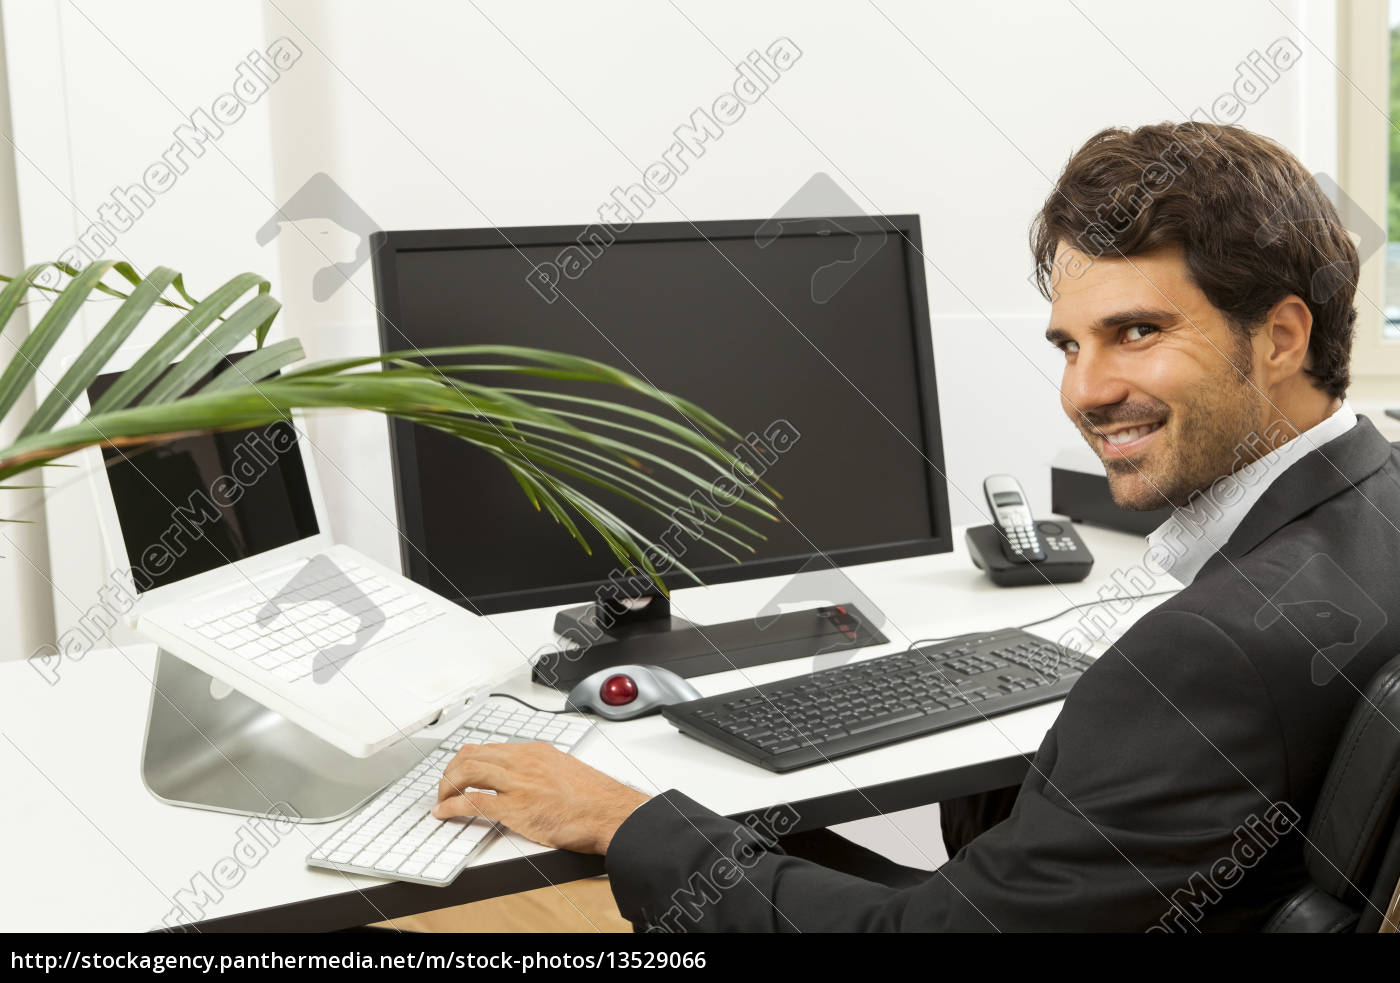 Young Successful Businessman With Black Suit In The Stock Image 13529066 Panthermedia Stock Agency